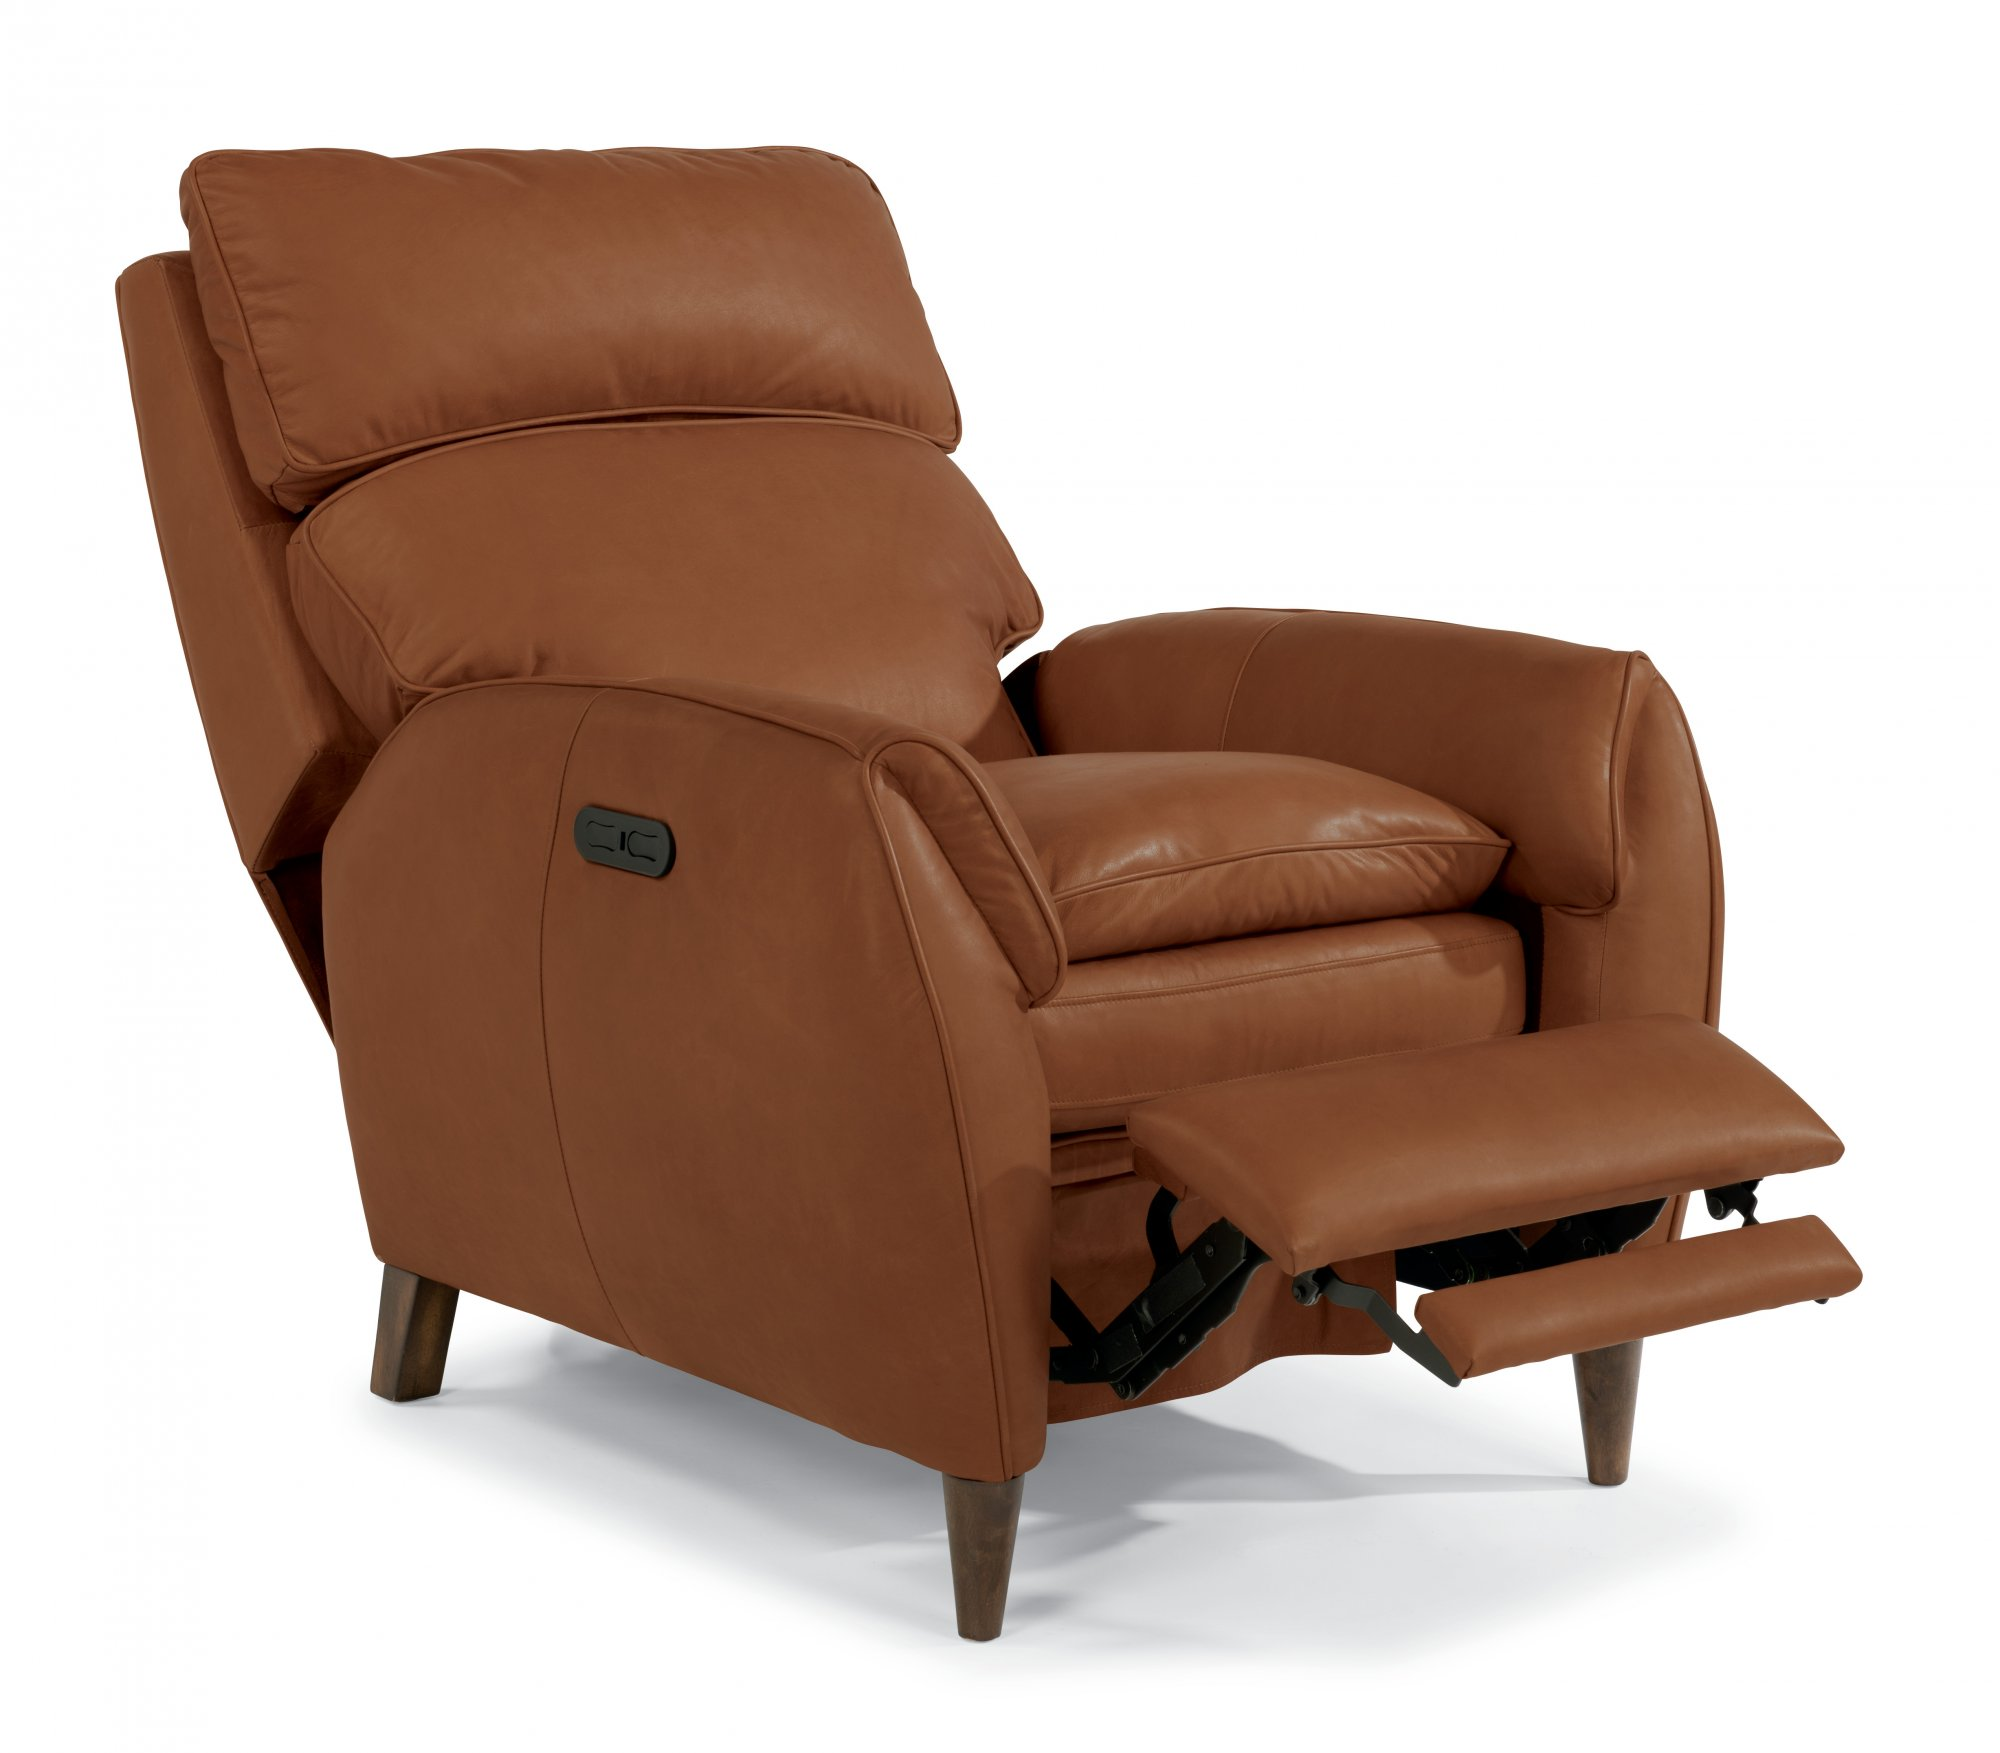 leather power highleg recliner with power headrest - Electric Recliner Chairs